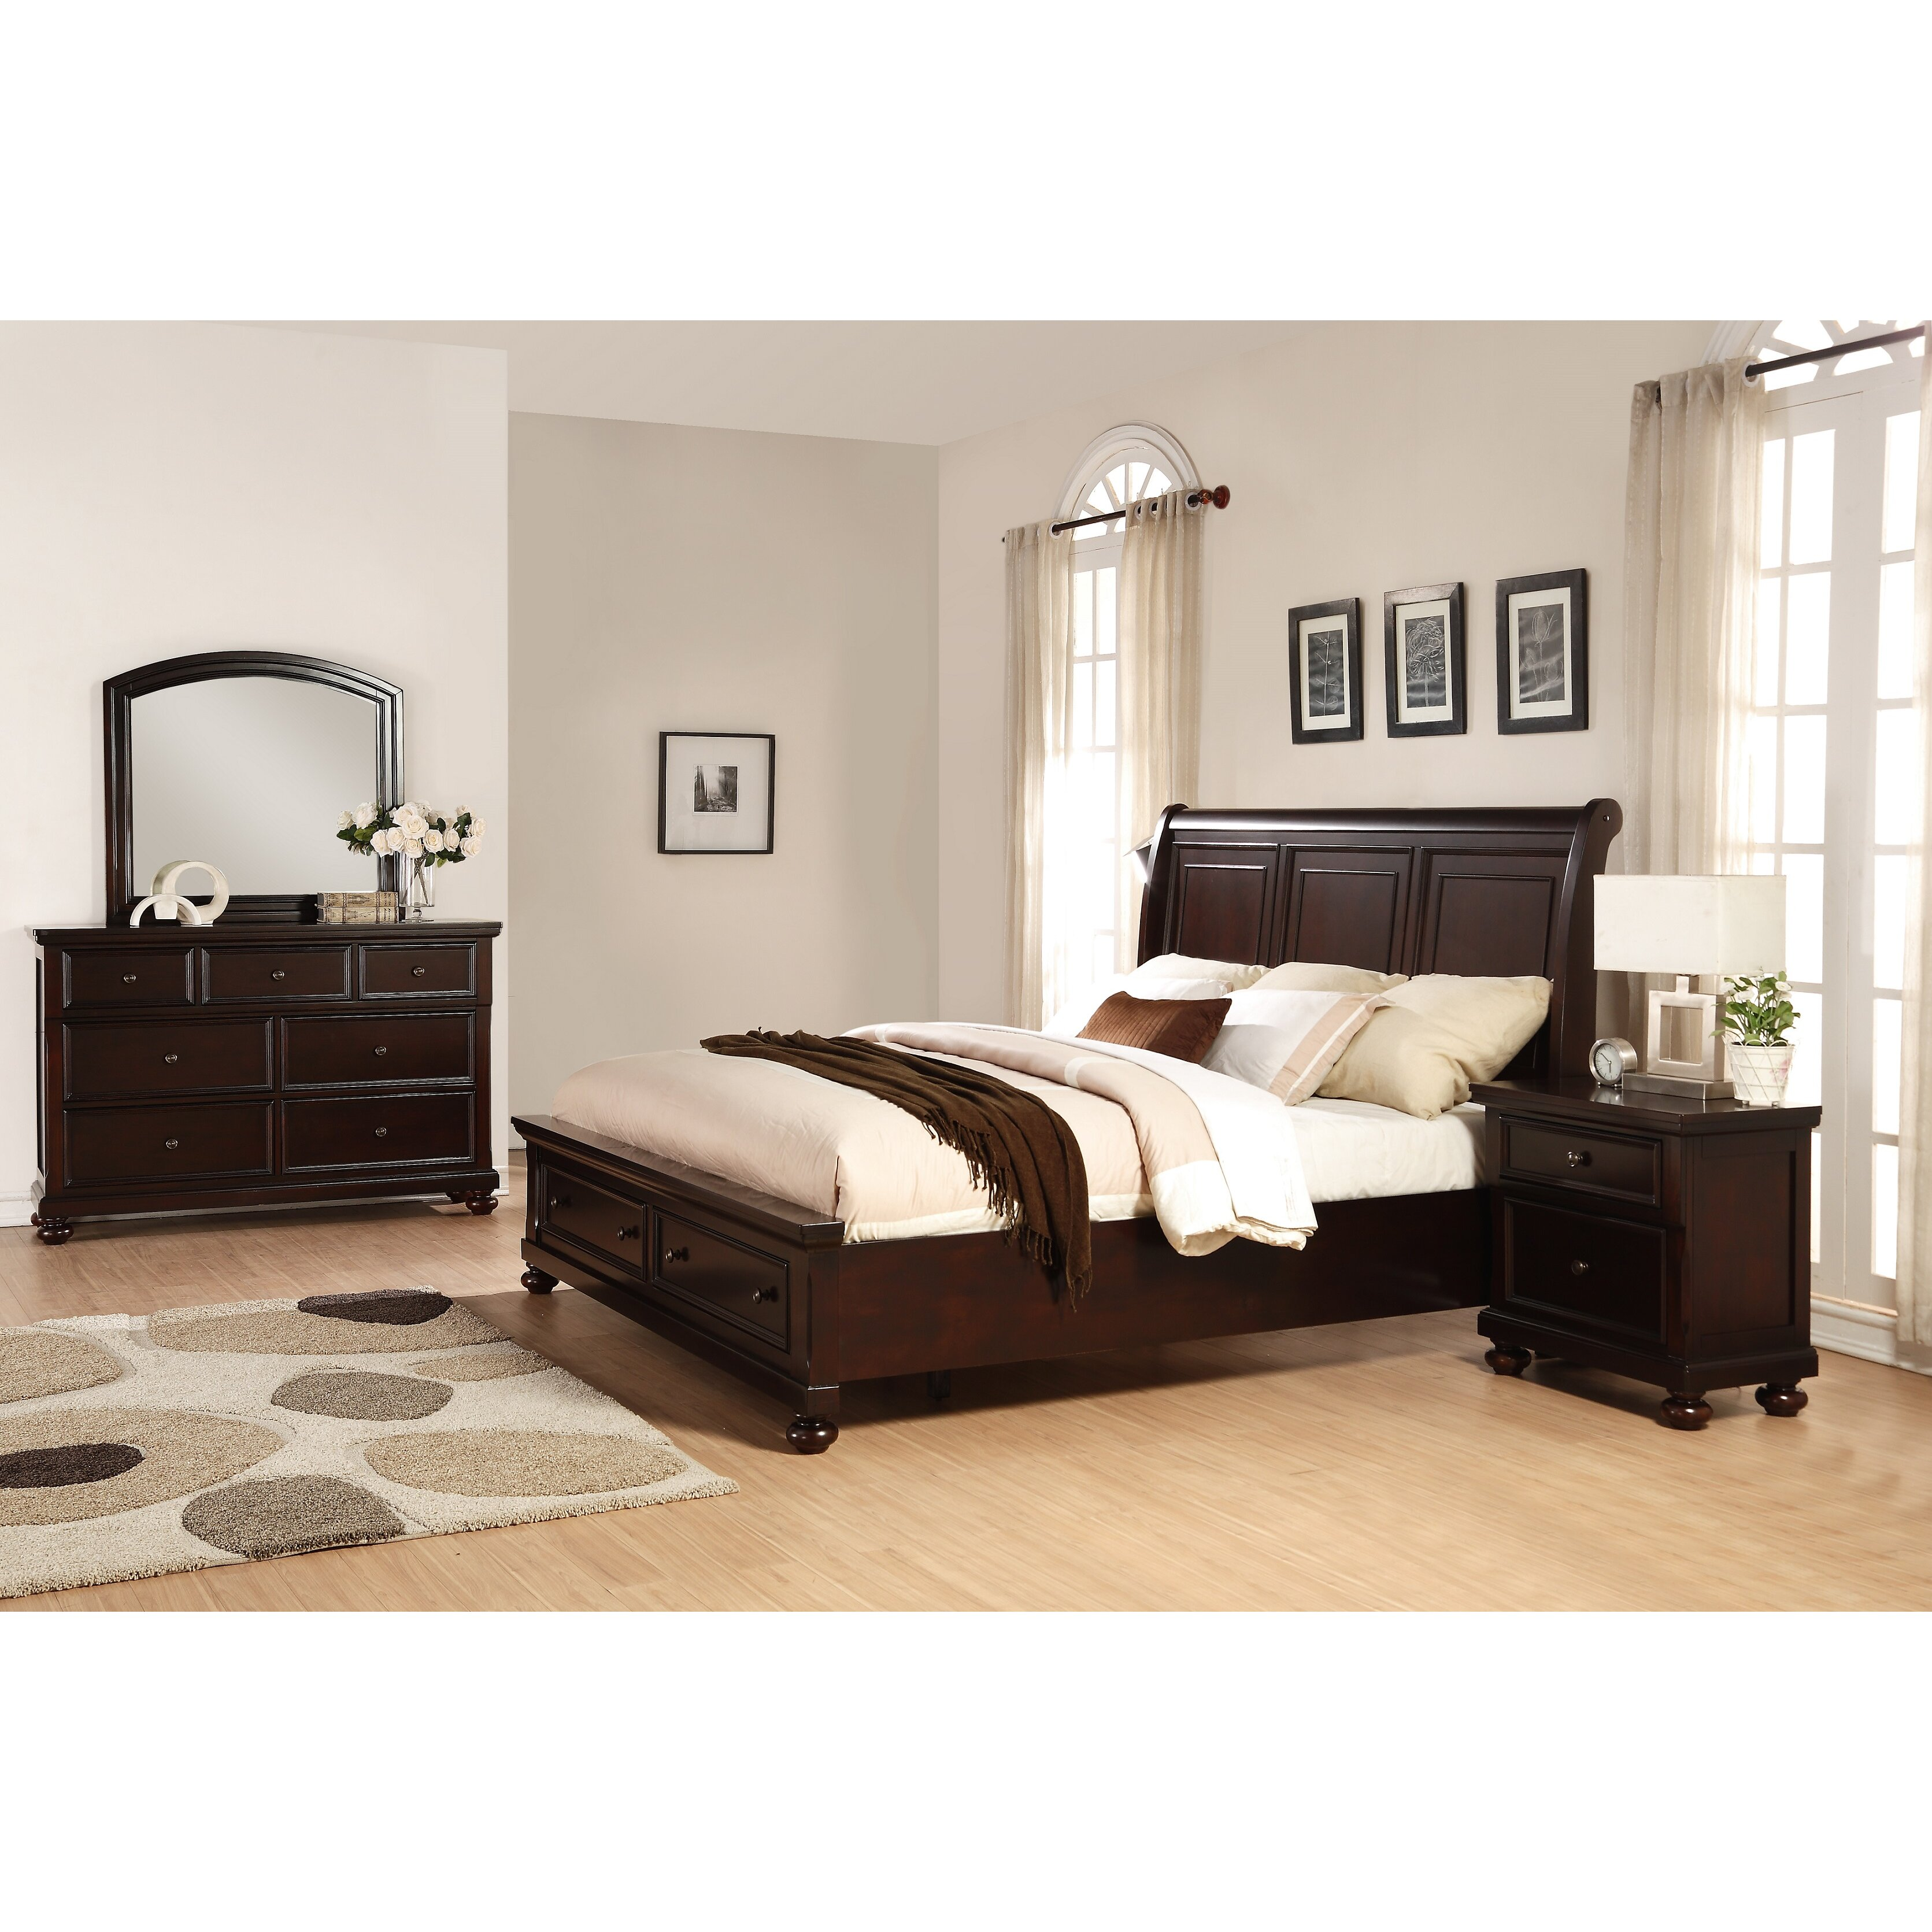 Roundhill Furniture Brishland Platform 4 Piece Bedroom Set Wayfair